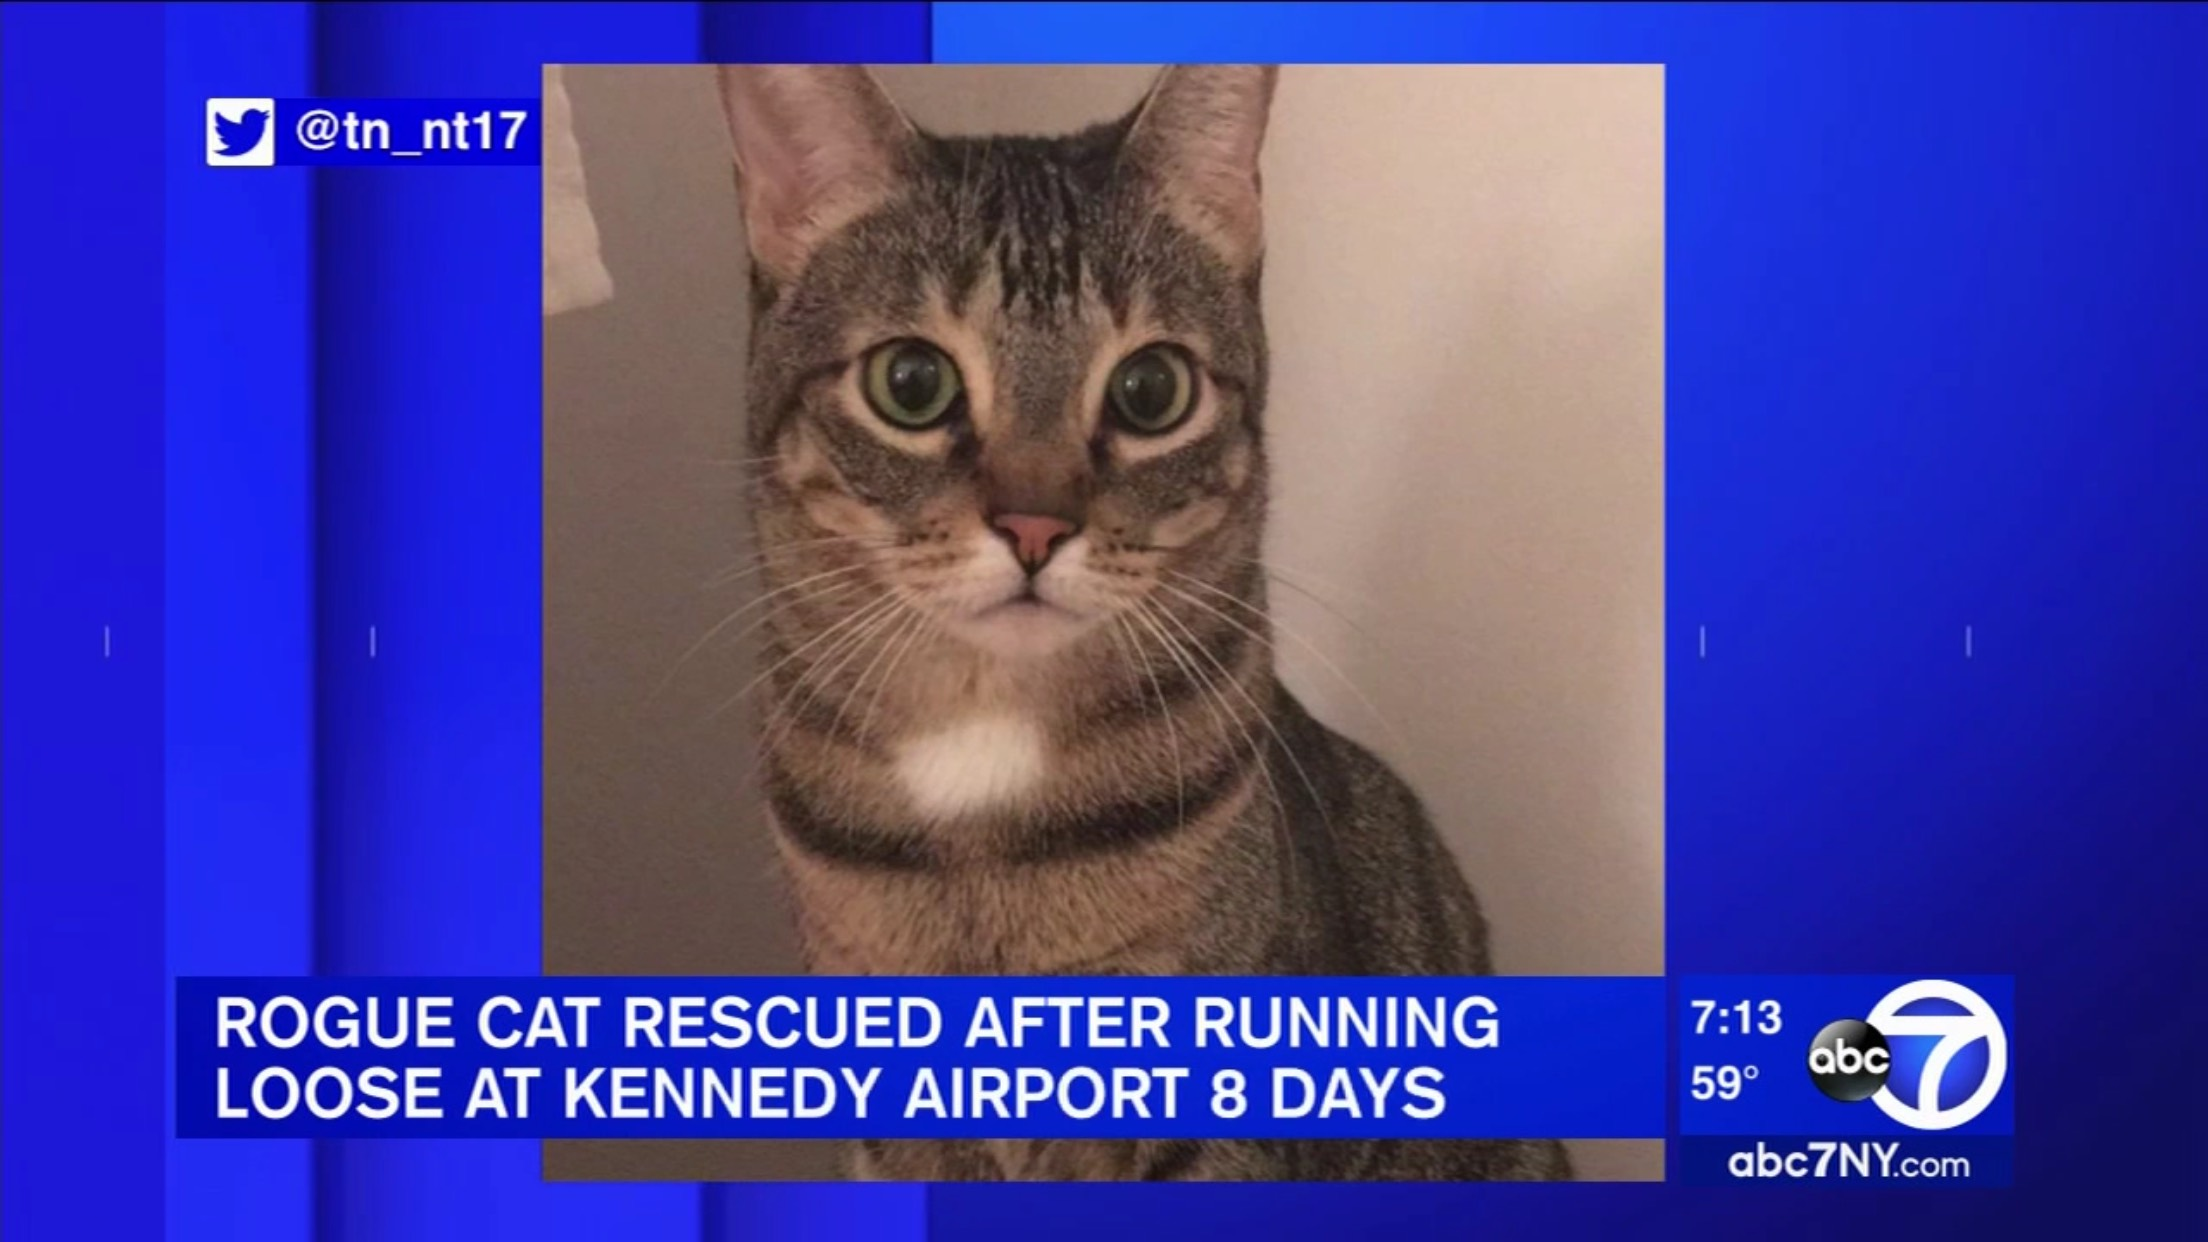 Rogue Cat Rescued After Running Loose At Kennedy Airport 8 Days